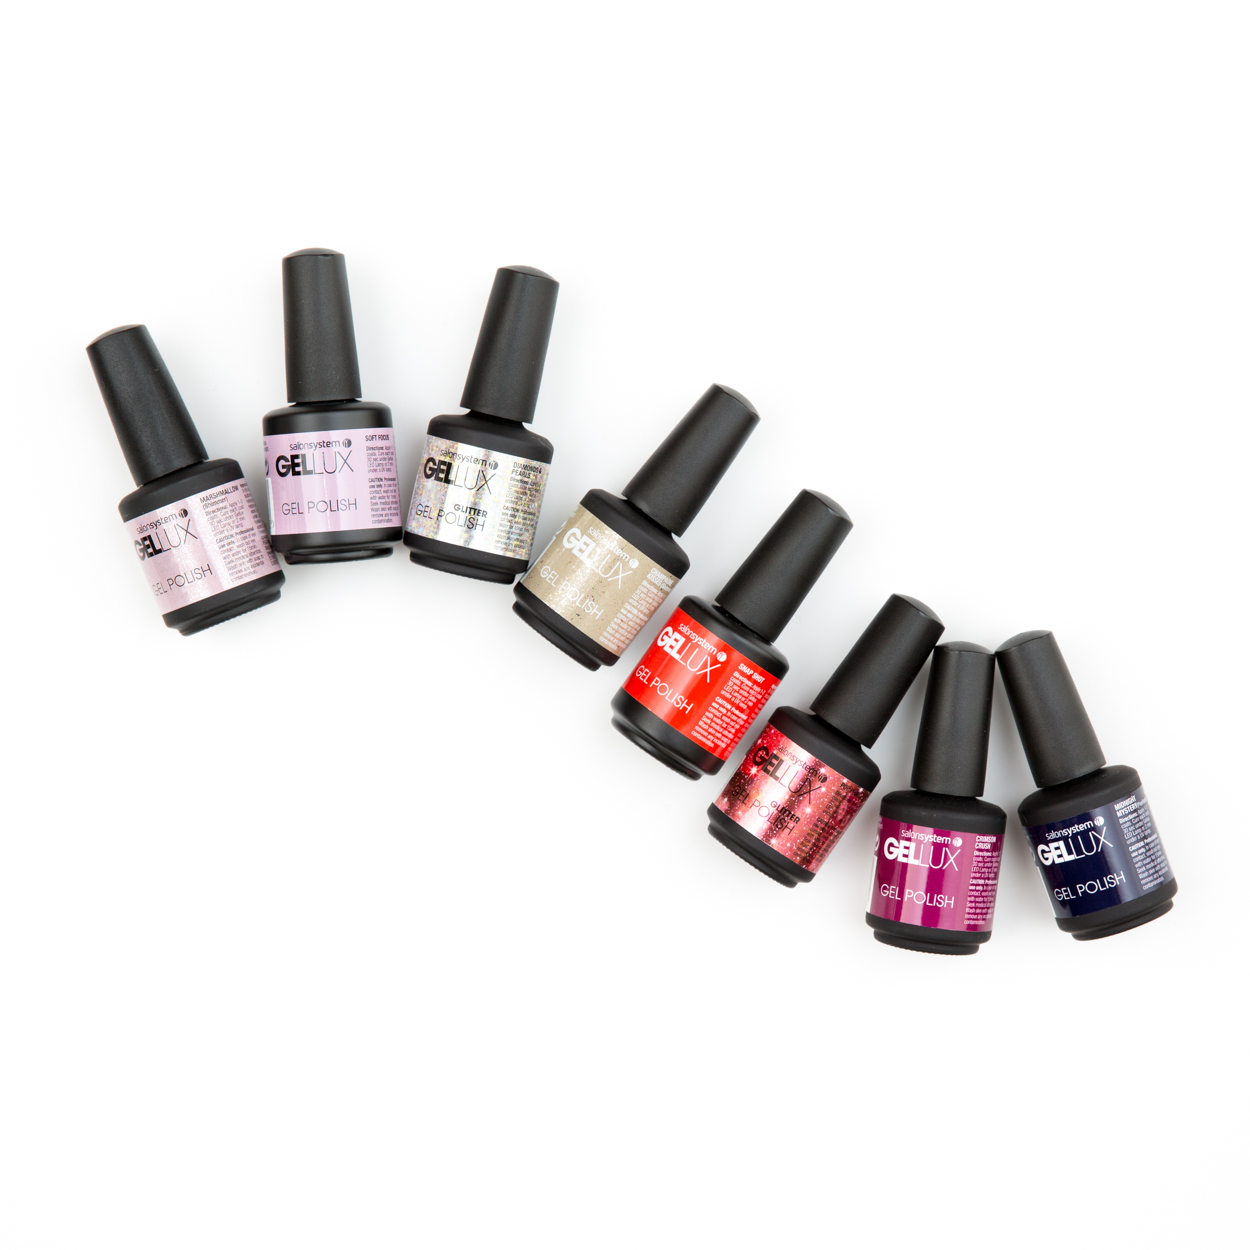 Gellux core collection